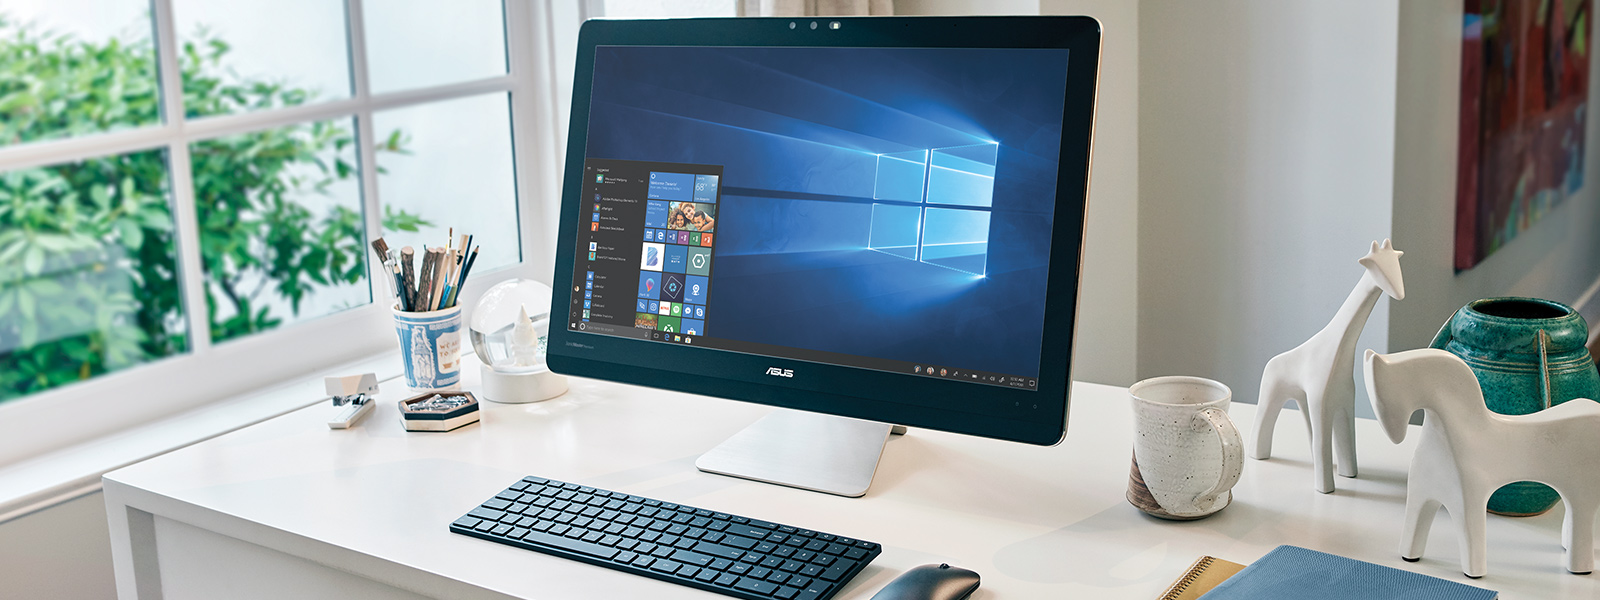 An ASUS desktop on a desk with a wireless mouse and a keyboard besides it